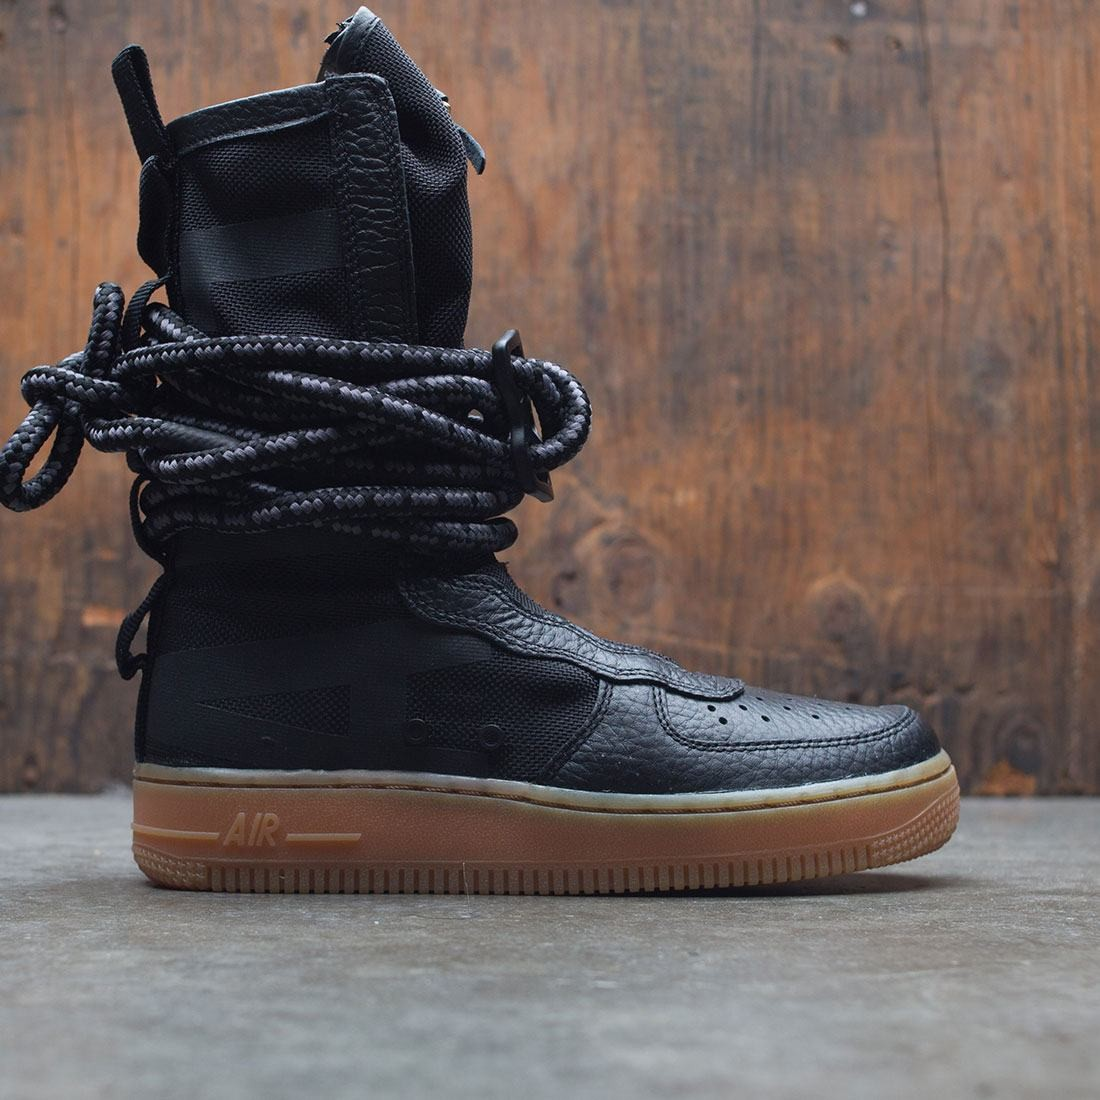 nike women sf air force 1 hi boot black black gum light brown